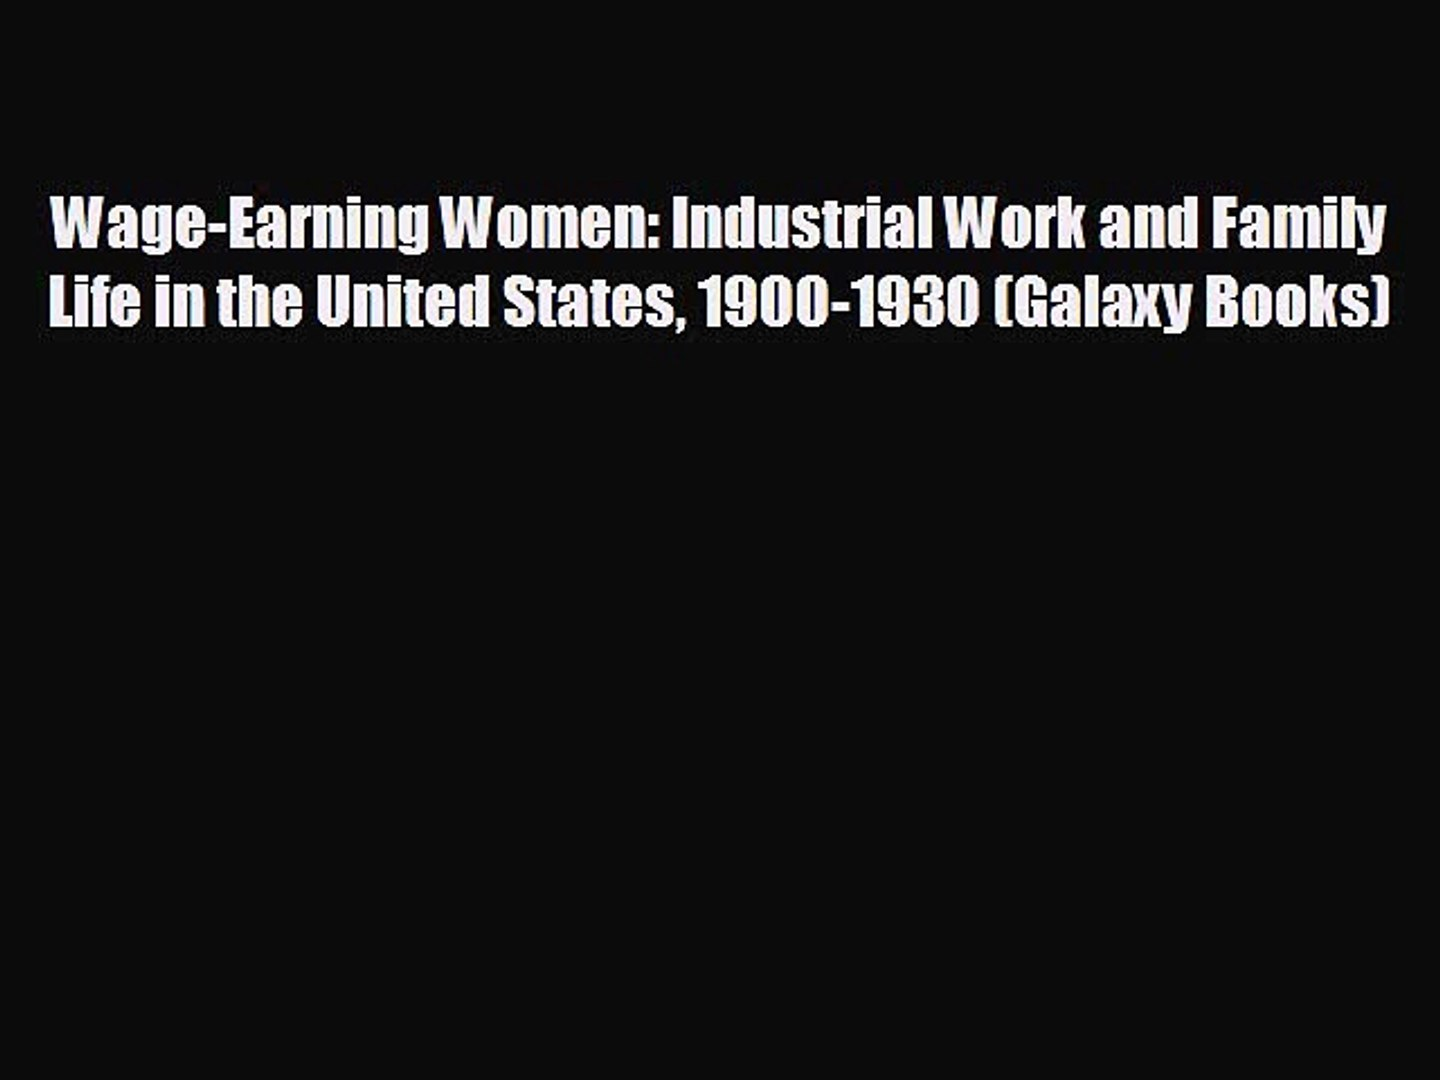 READ book Wage-Earning Women: Industrial Work and Family Life in the United States 1900-1930